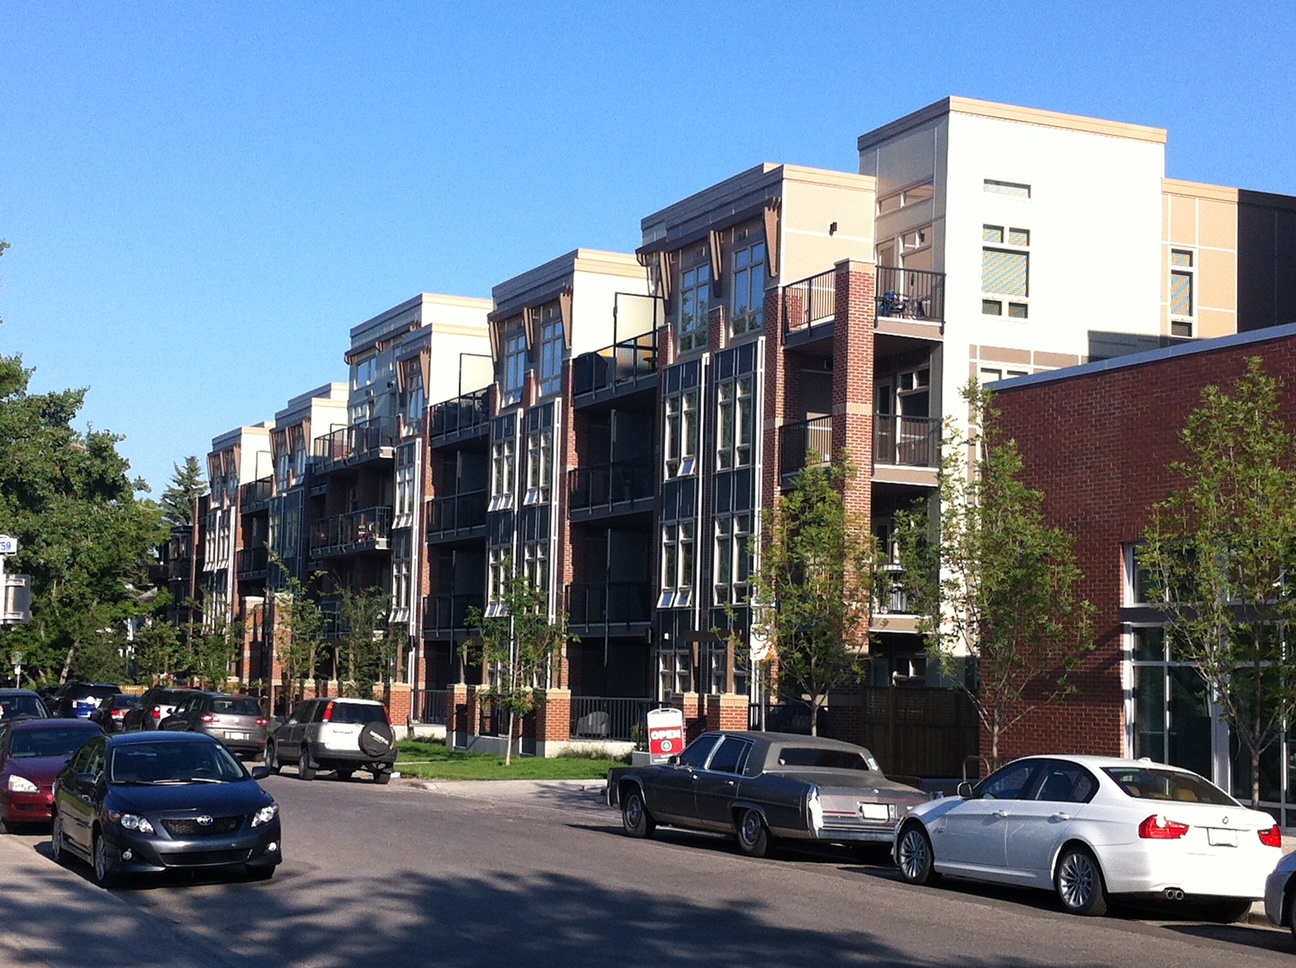 It is also home to lots of new low-rise condos.